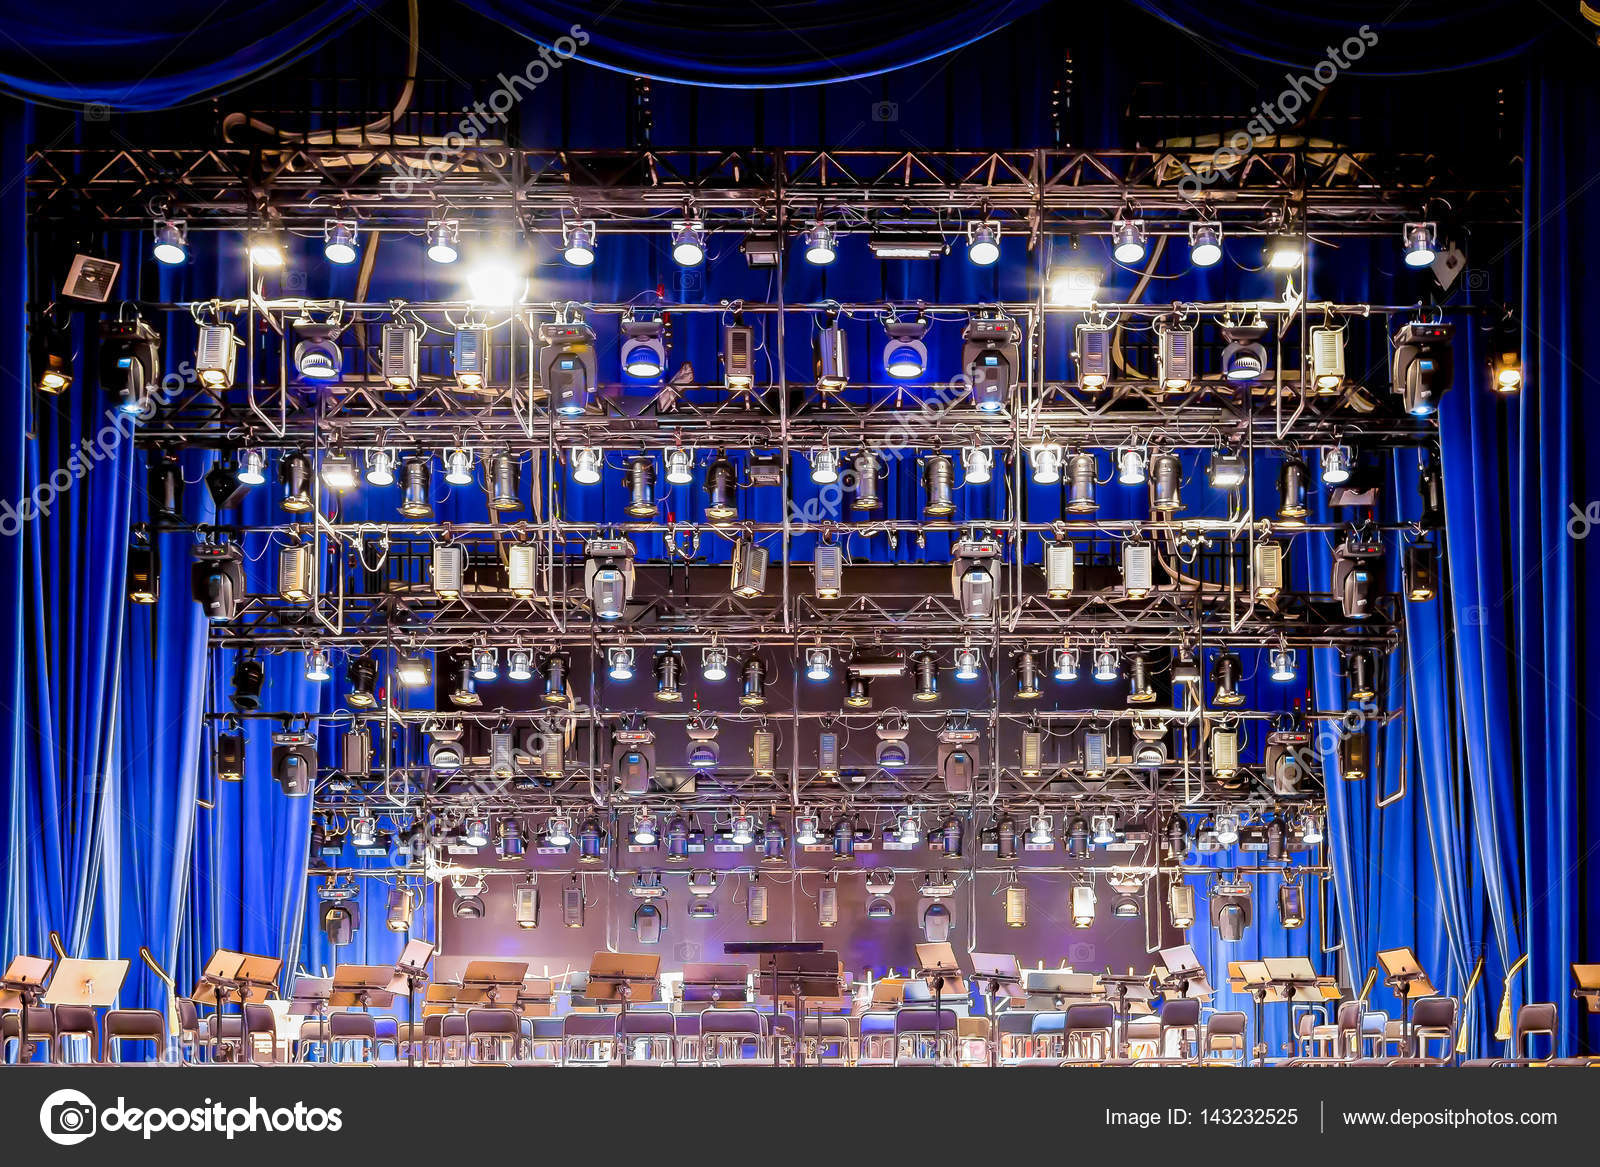 Lighting equipment on stage musical theatre or Philharmonic. u2014 Stock Photo & Lighting equipment on stage musical theatre or Philharmonic ...